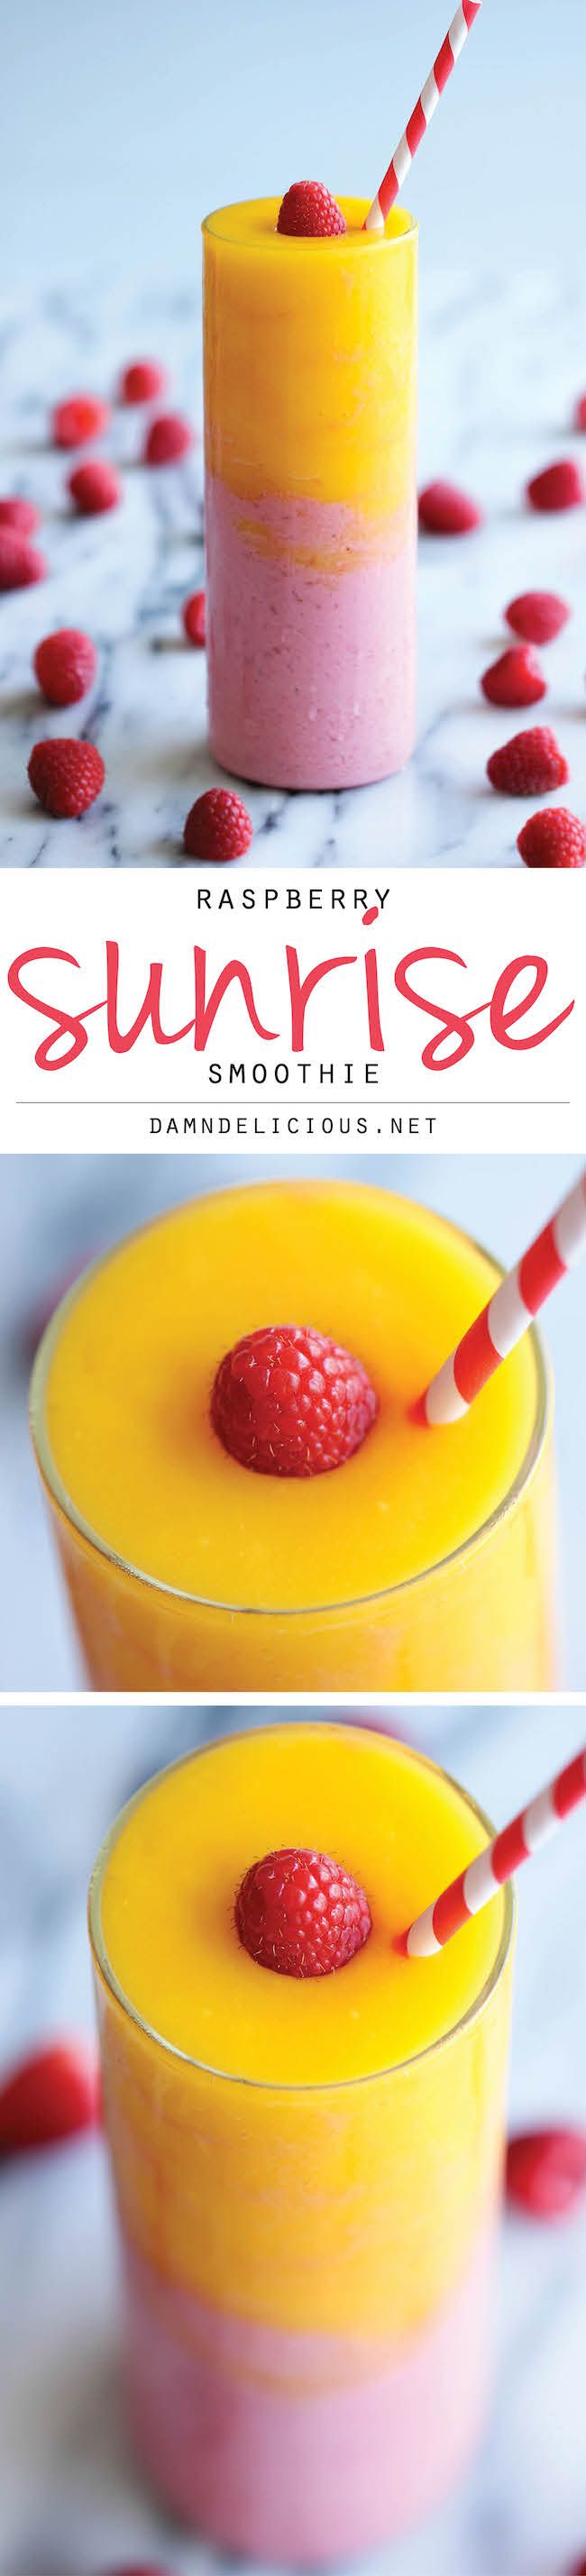 Raspberry Sunrise Smoothie - 4-ingredient raspberry mango smoothie - so easy and amazingly refreshing!